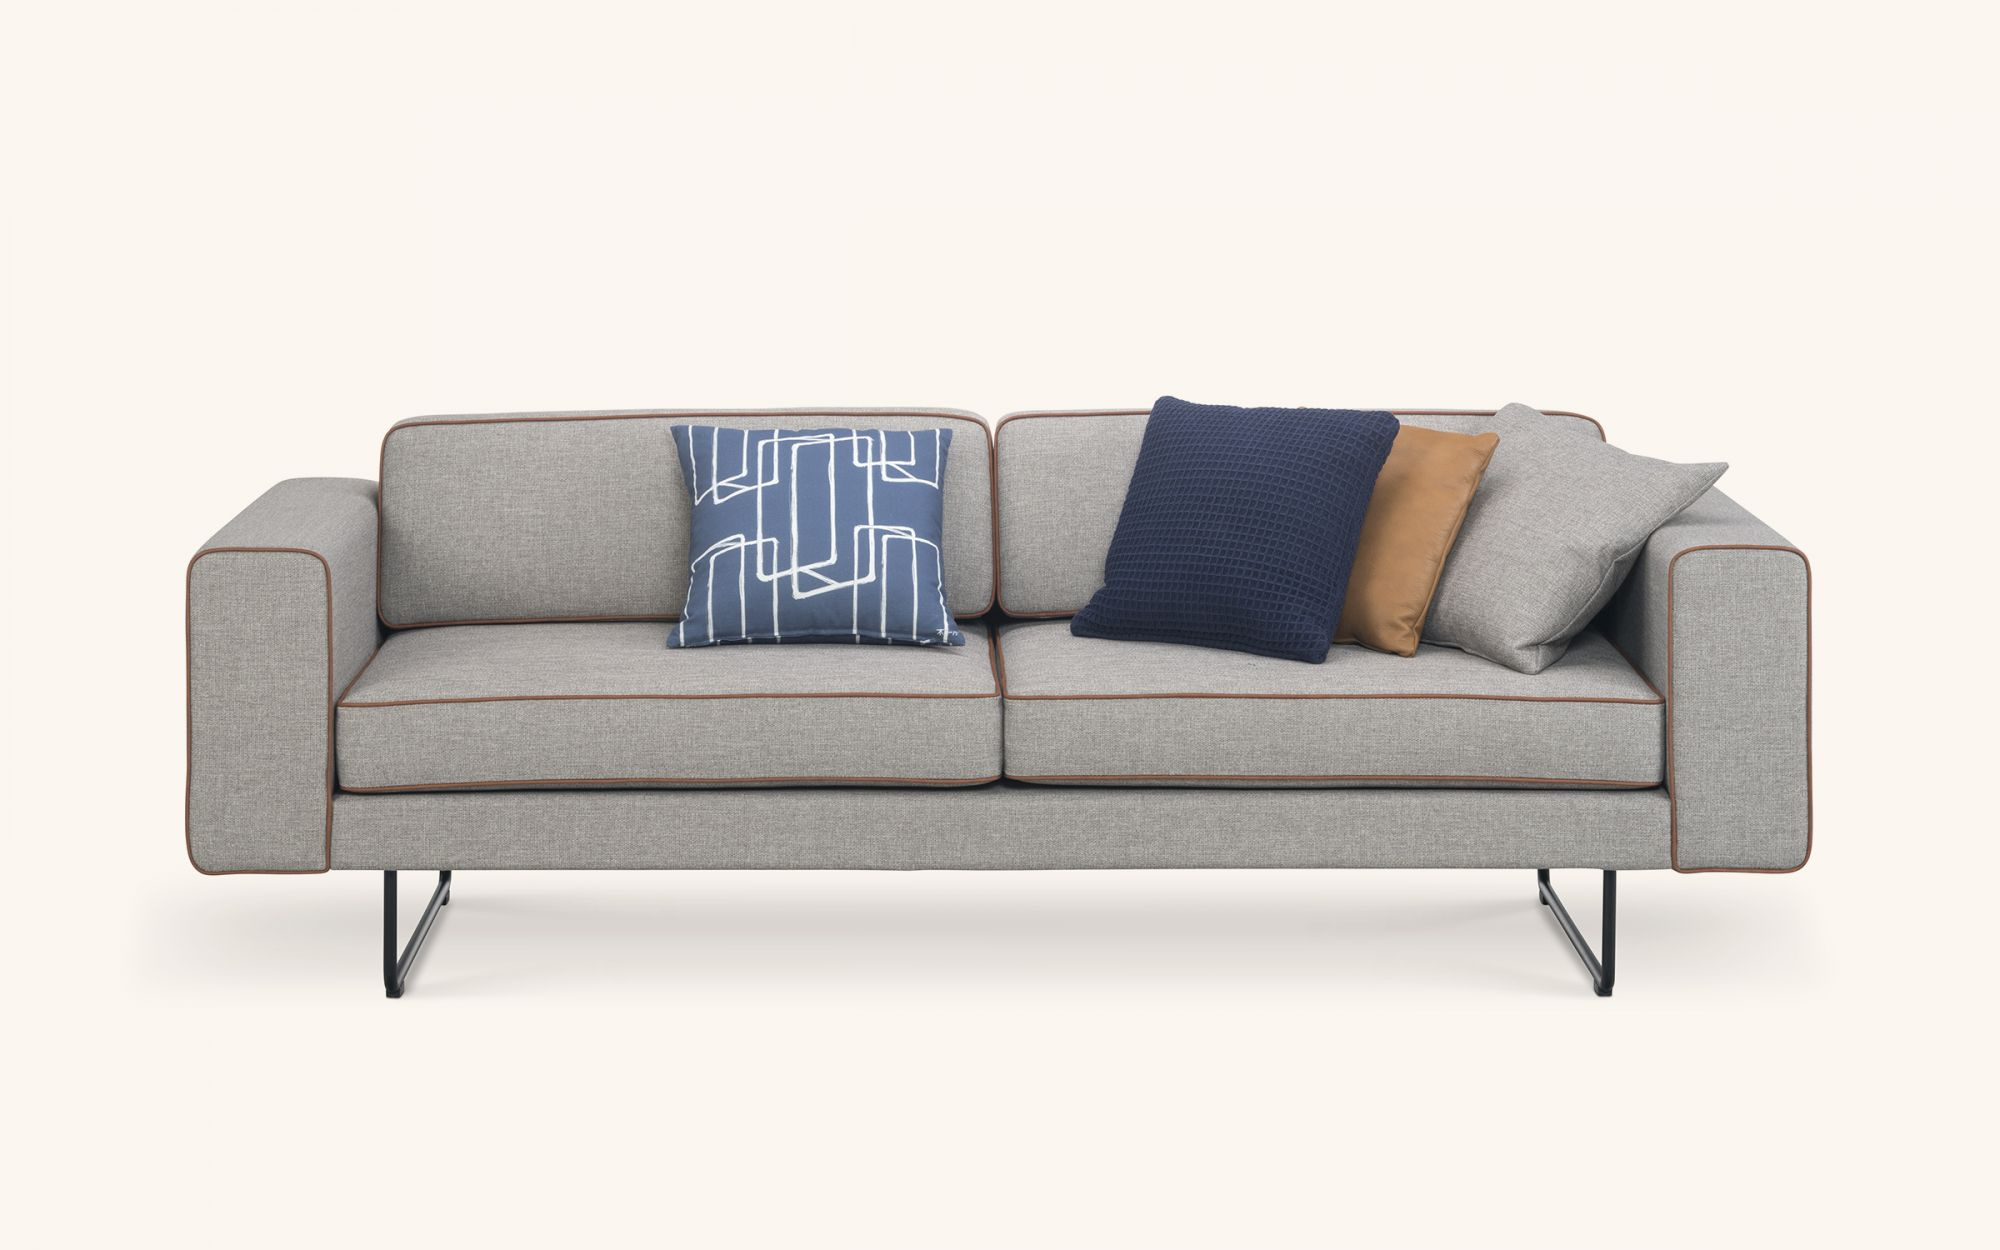 Rim Sofa - grey front view